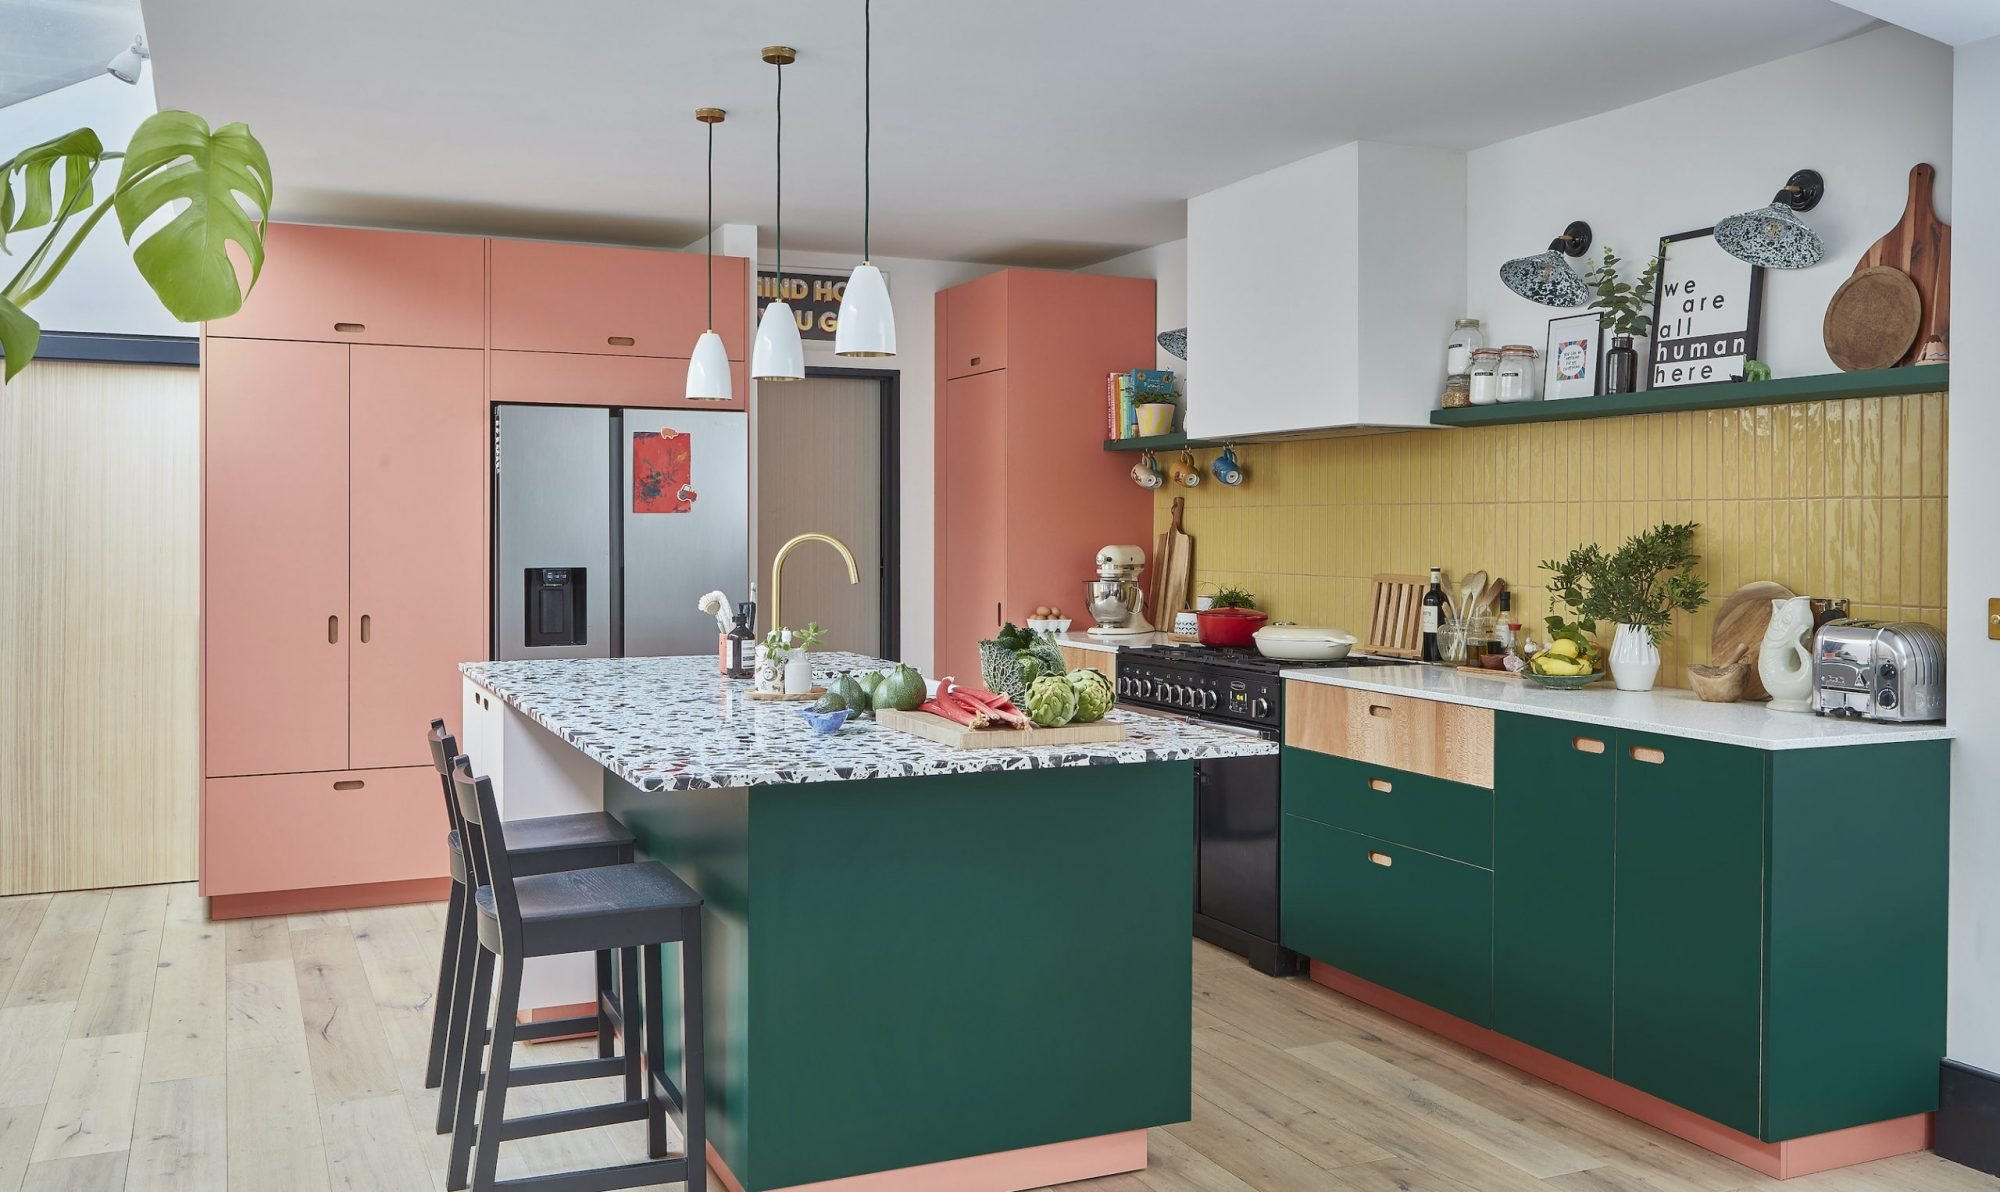 Before and after: Rainbow colours have transformed a tired kitchen into a vibrant space